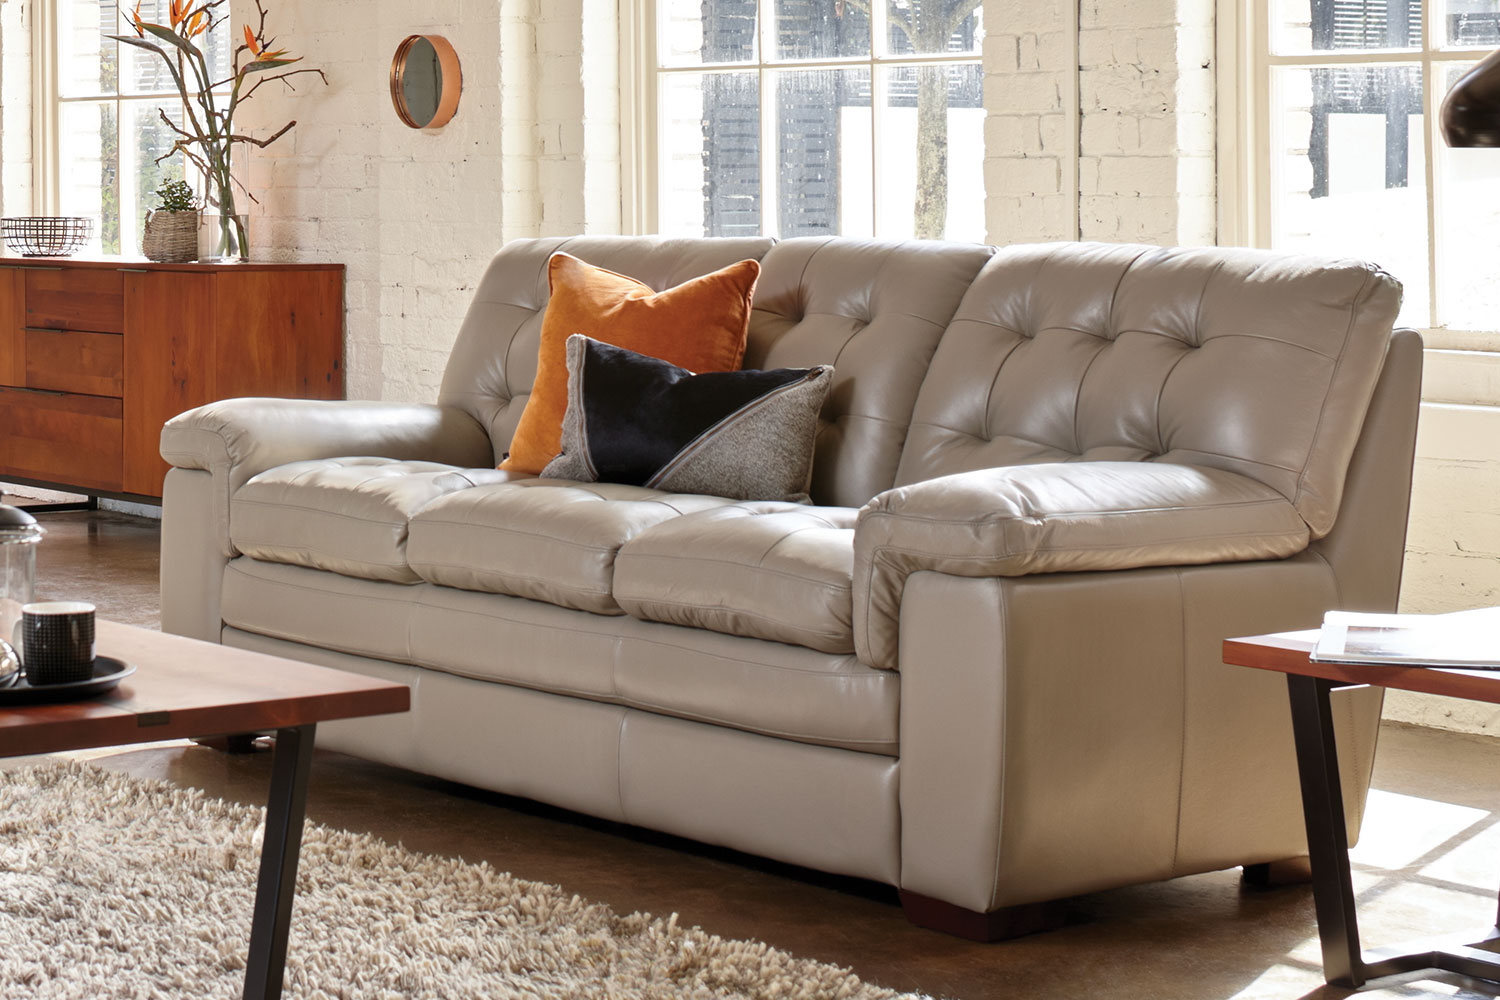 Leather Sofa La Z Boy Cullen 2 Piece Leather Lounge Suite By La Z Boy